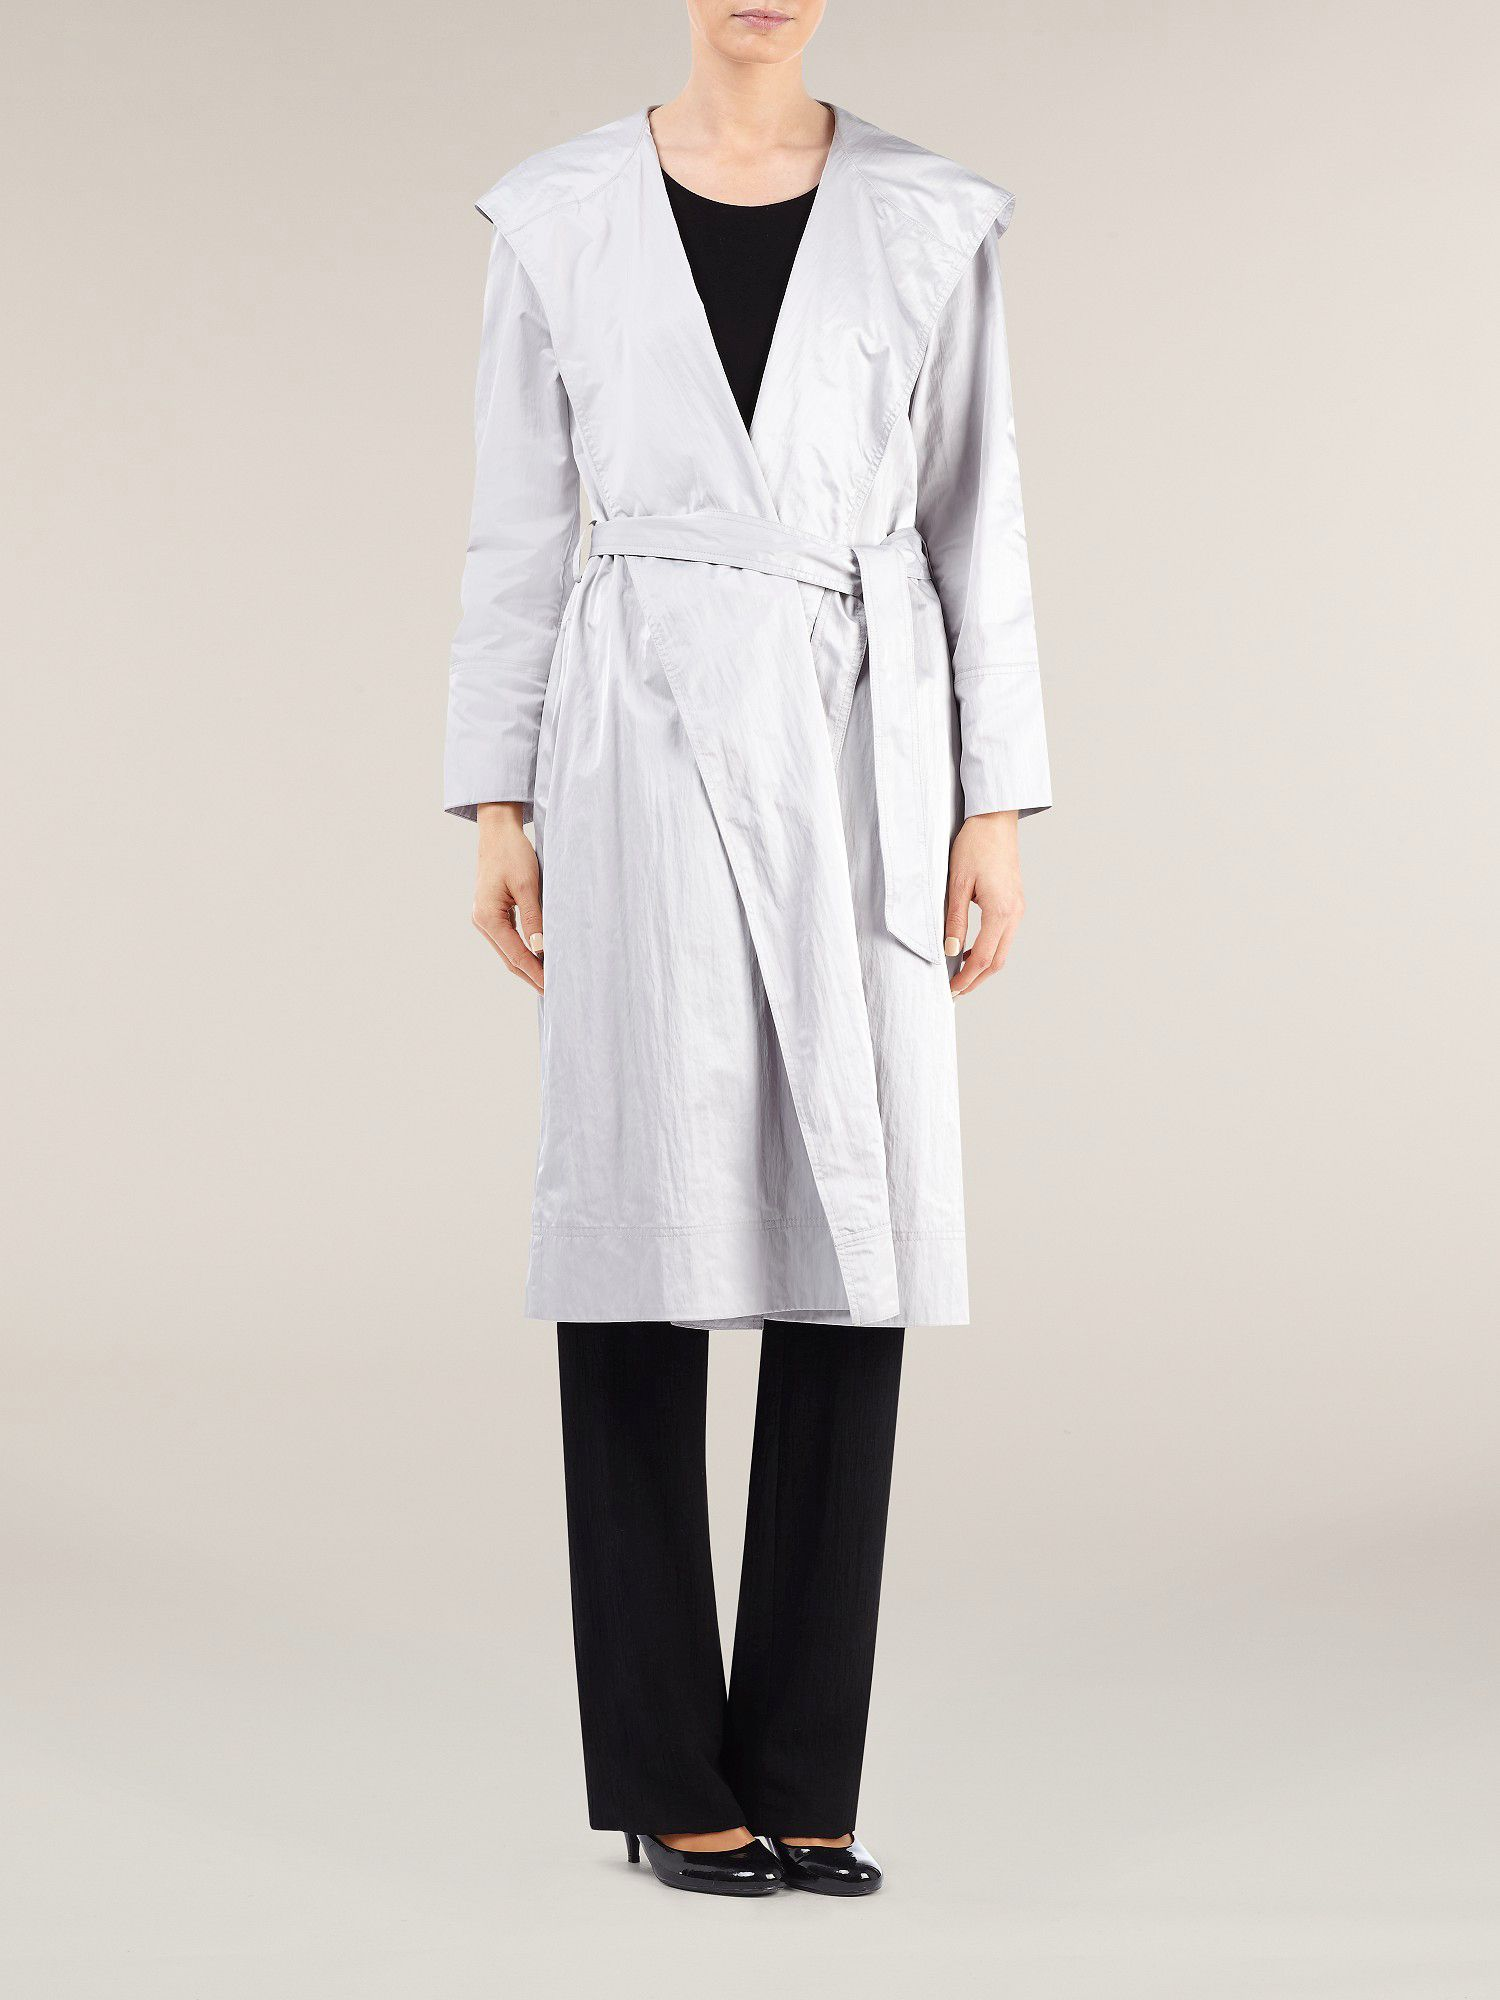 Silver hooded wrap raincoat